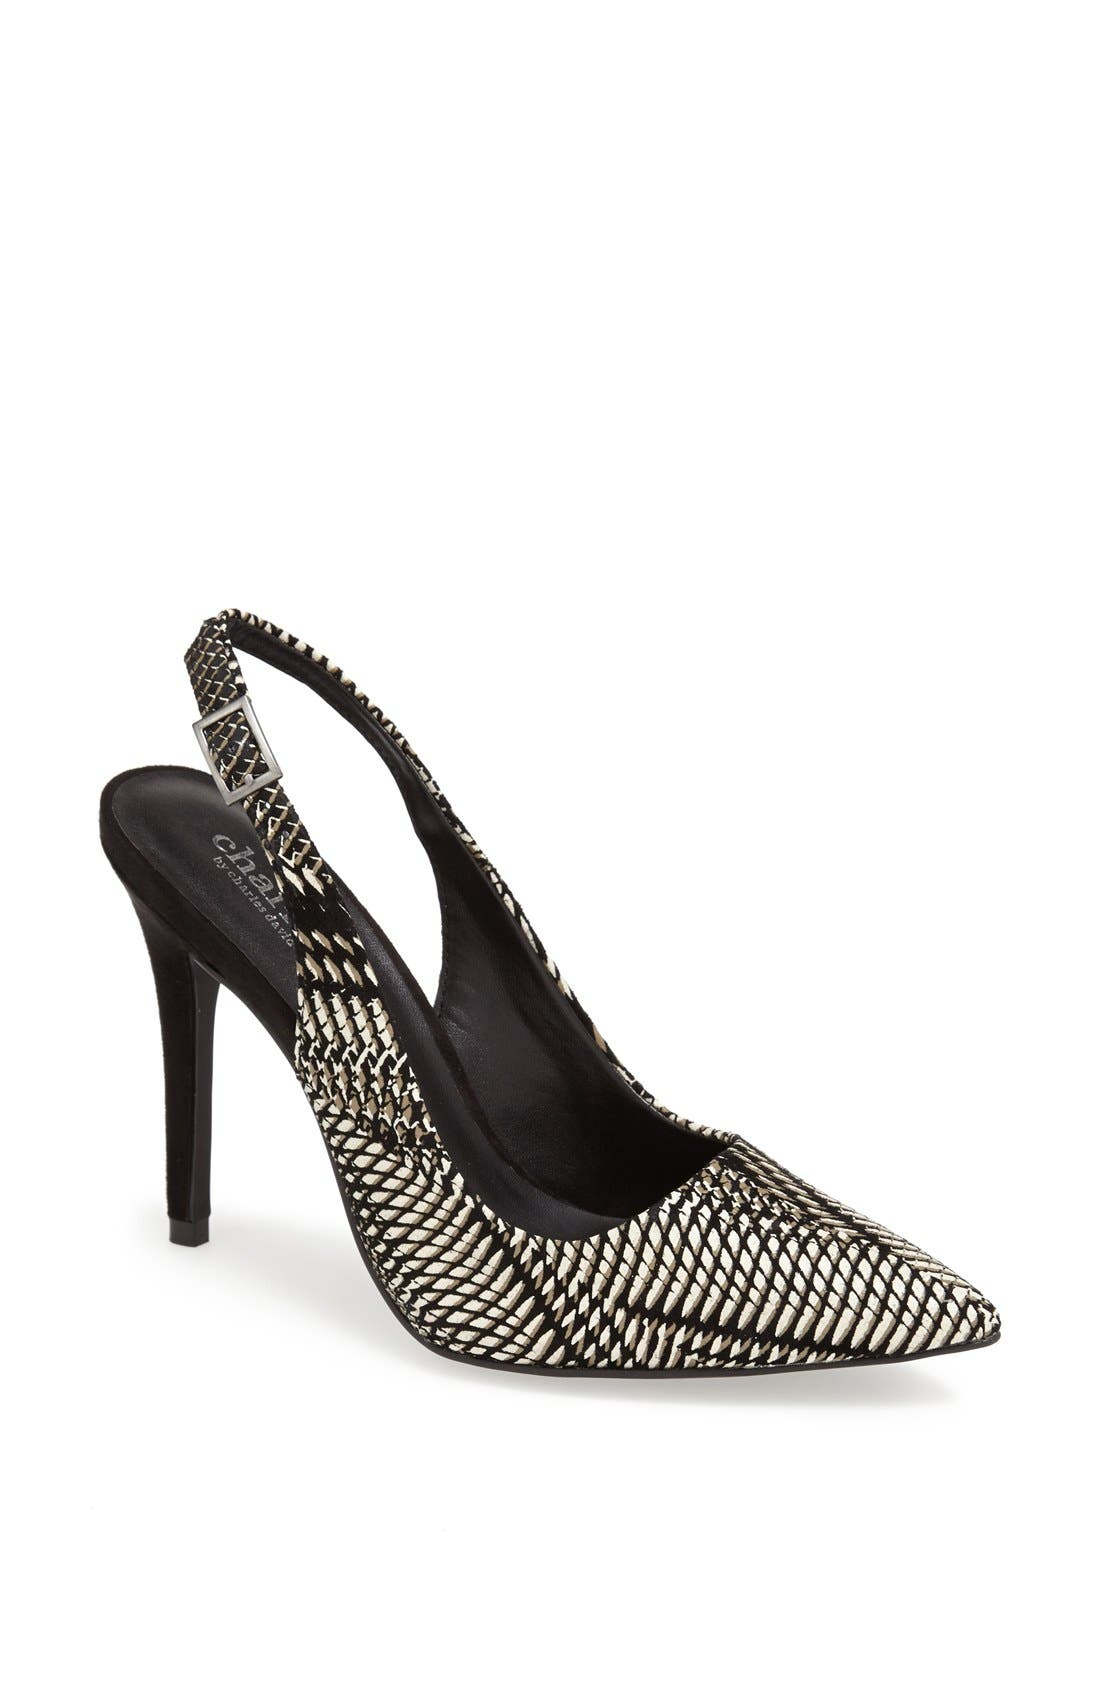 Alternate Image 1 Selected - Charles by Charles David 'Pamela' Slingback Pump